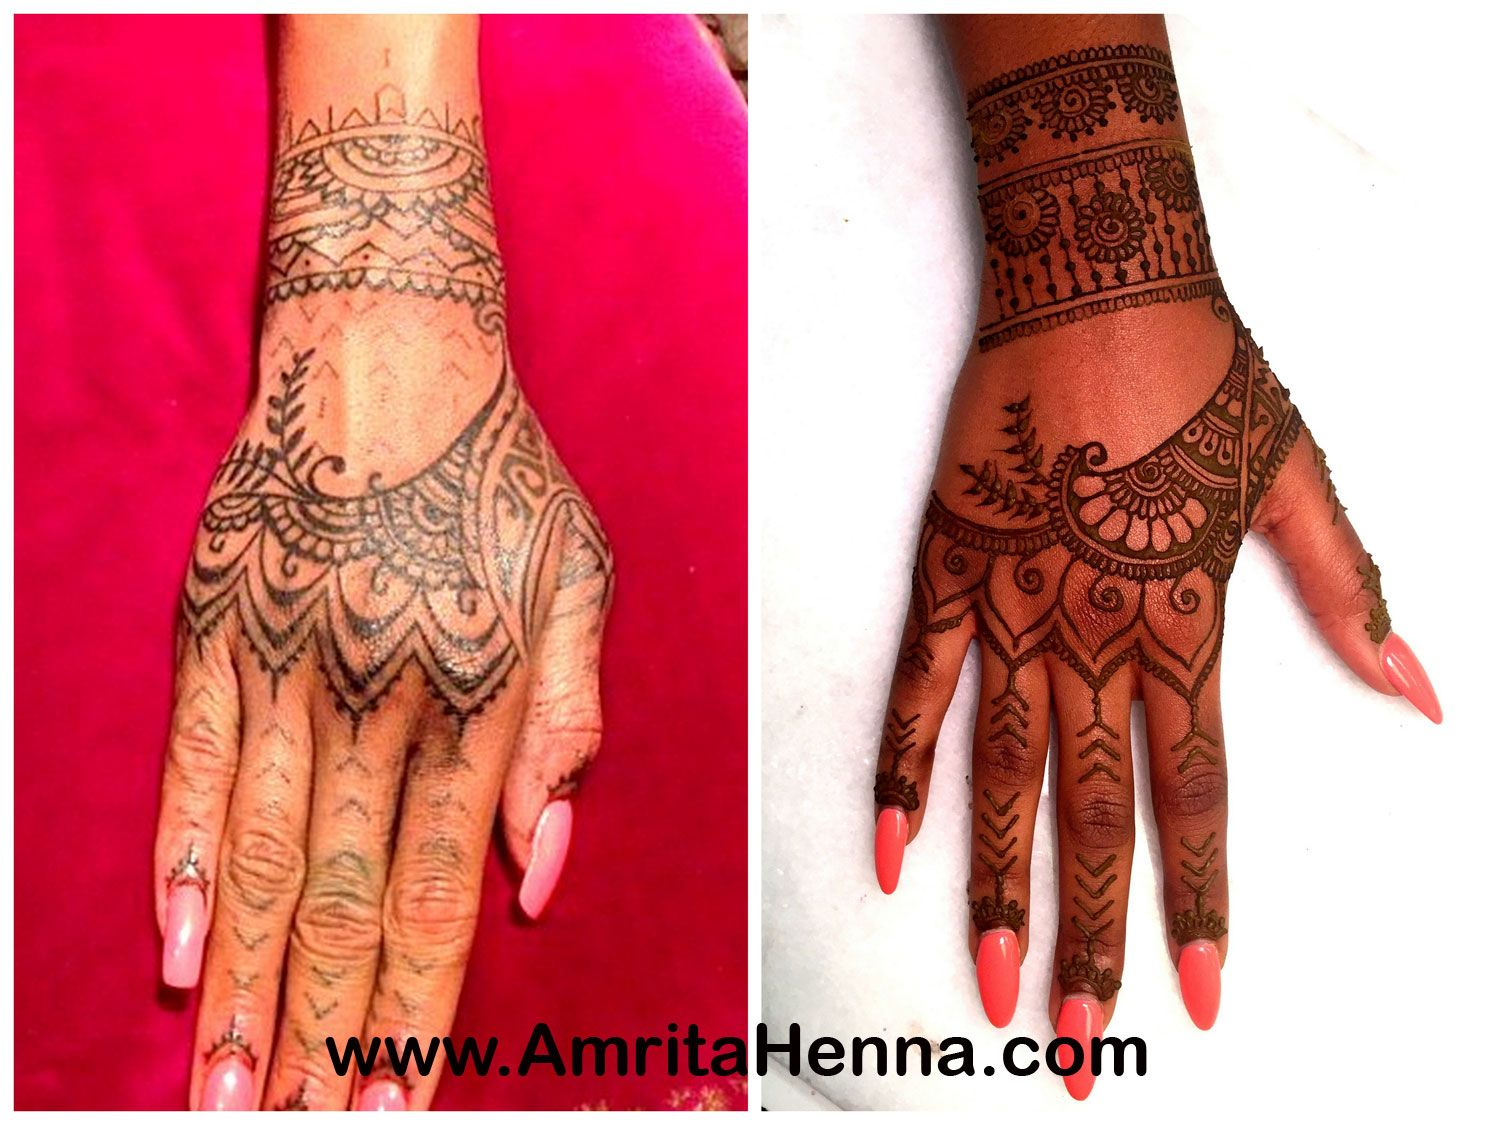 More Than A Singer Songwriter Model And Actress We All Know Rihanna As The True Superstar That She Tribal Hand Tattoos Rihanna Hand Tattoo Henna Tattoo Hand